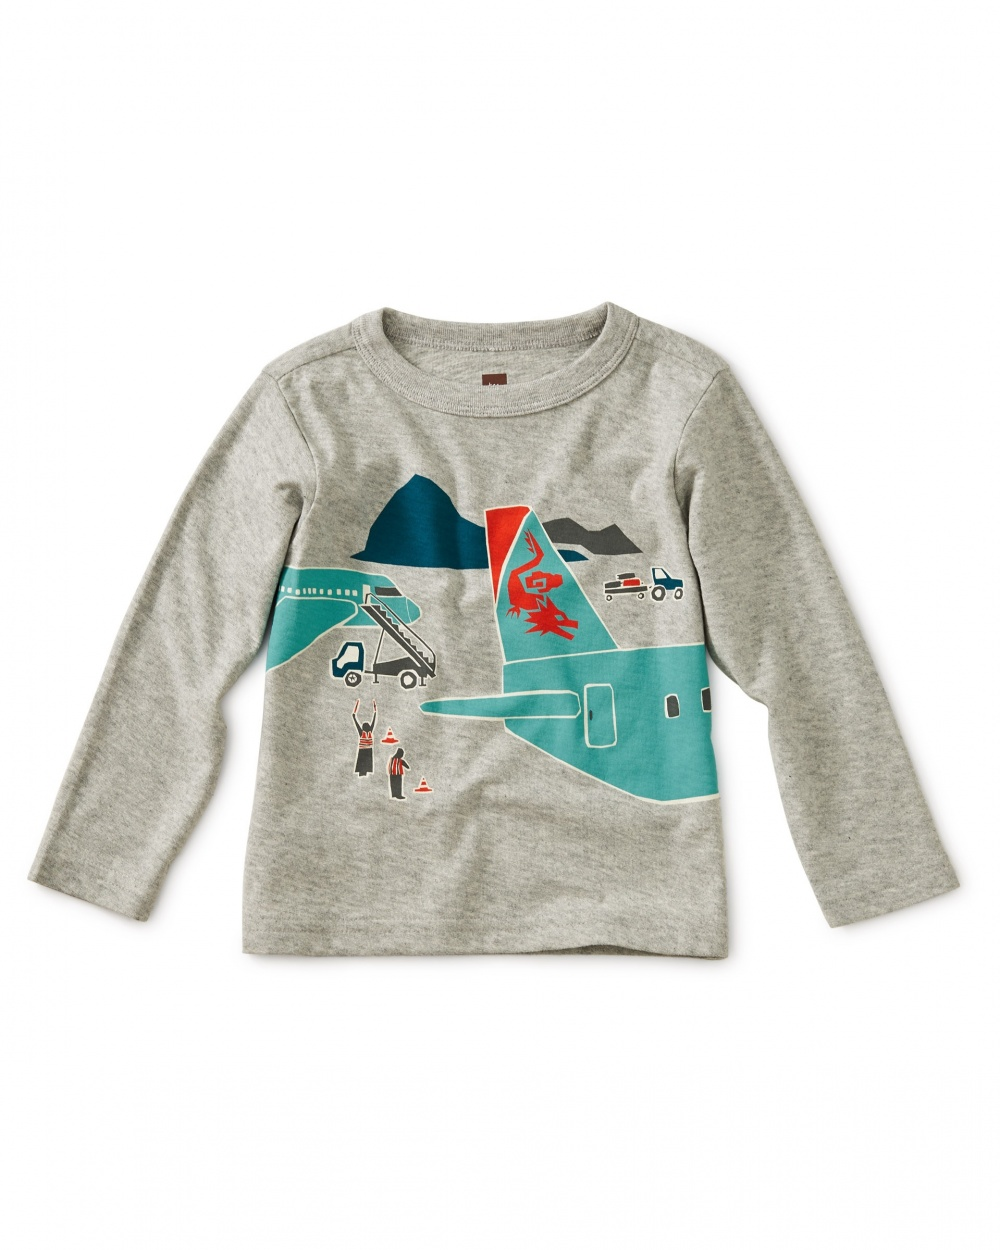 Plane Trip Graphic Baby Tee